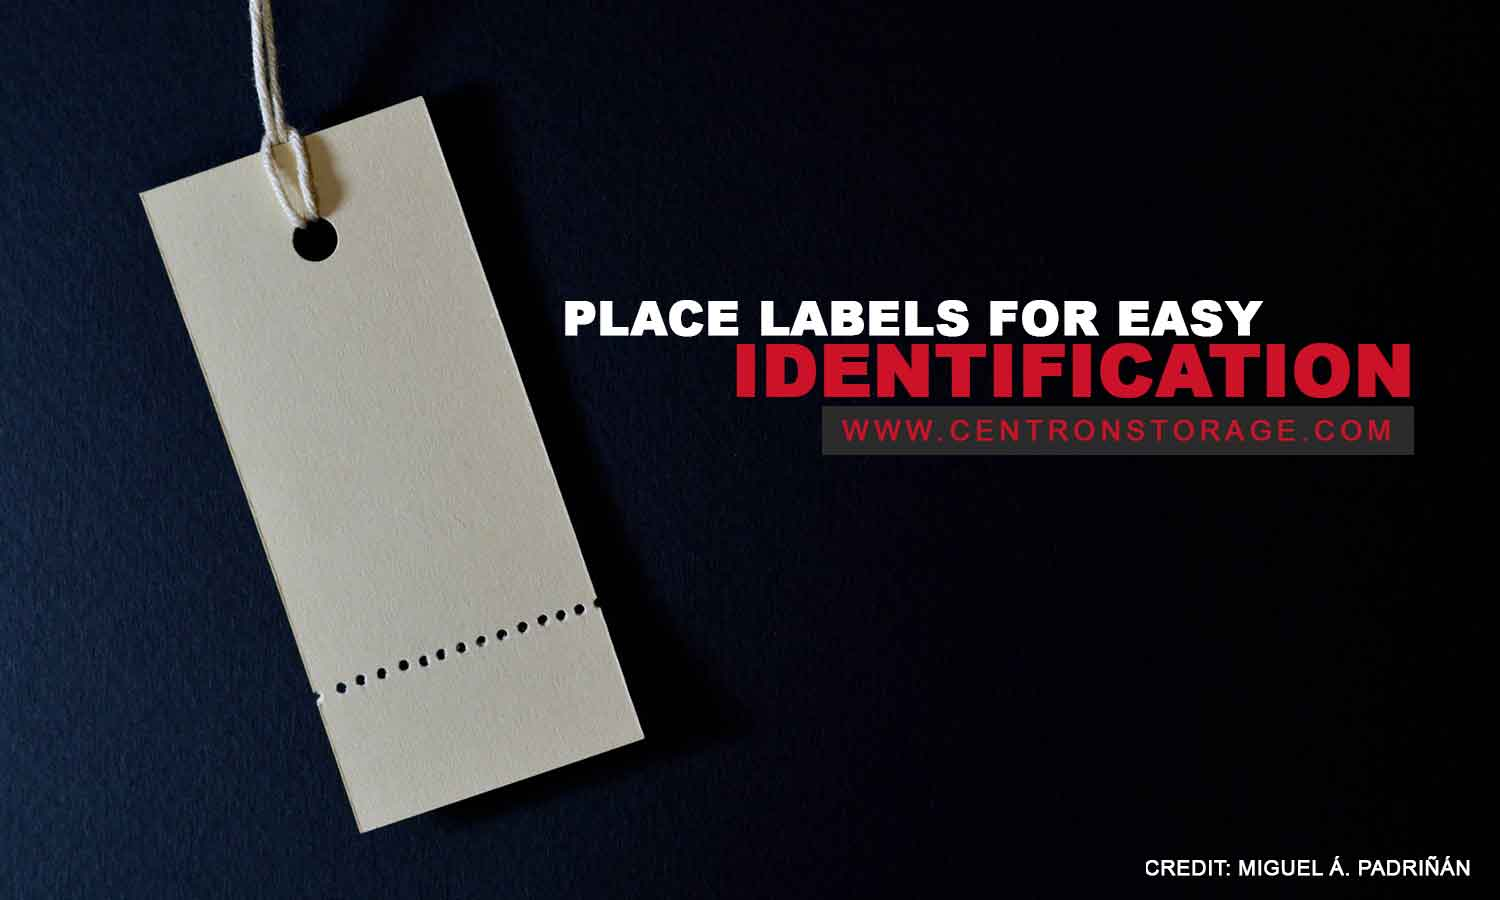 Place labels for easy identification